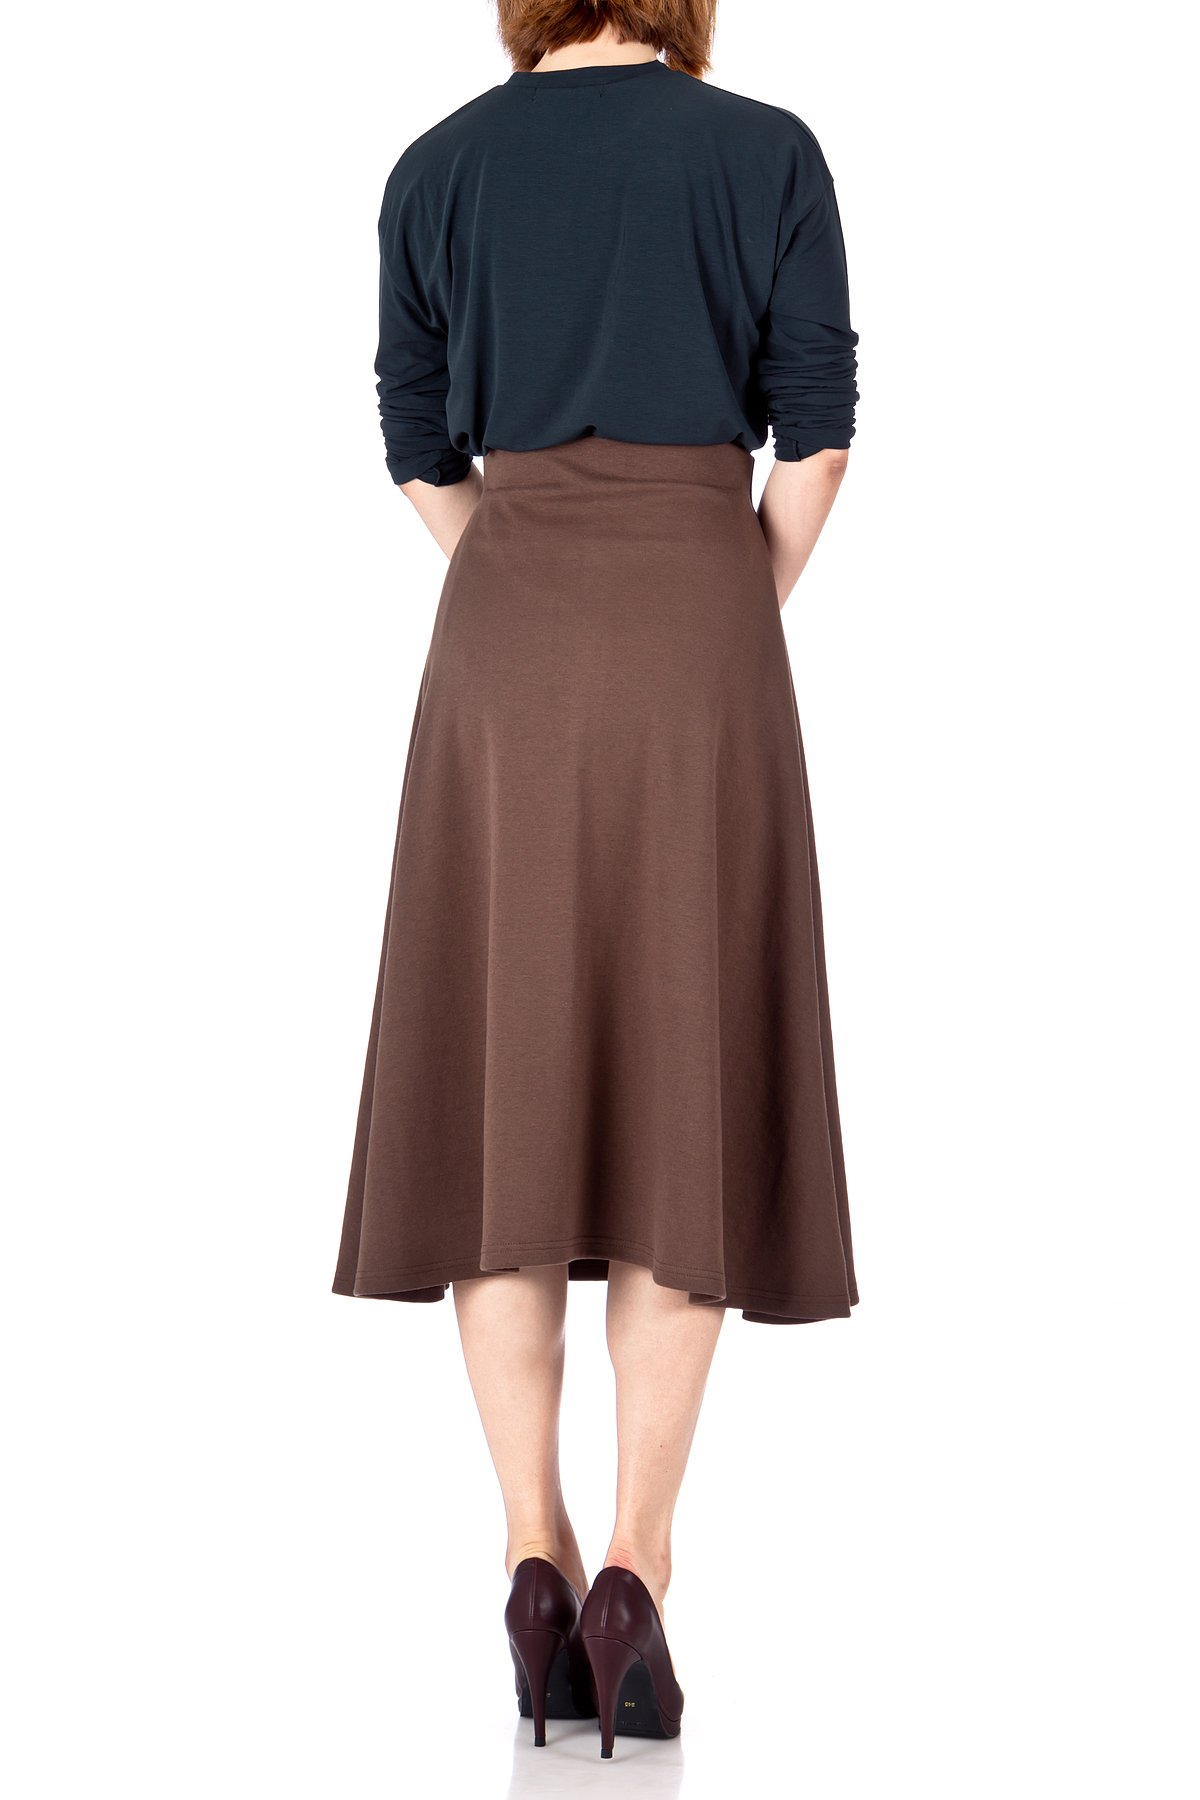 Elastic Waist A line Flared Long Skirt Brown 03